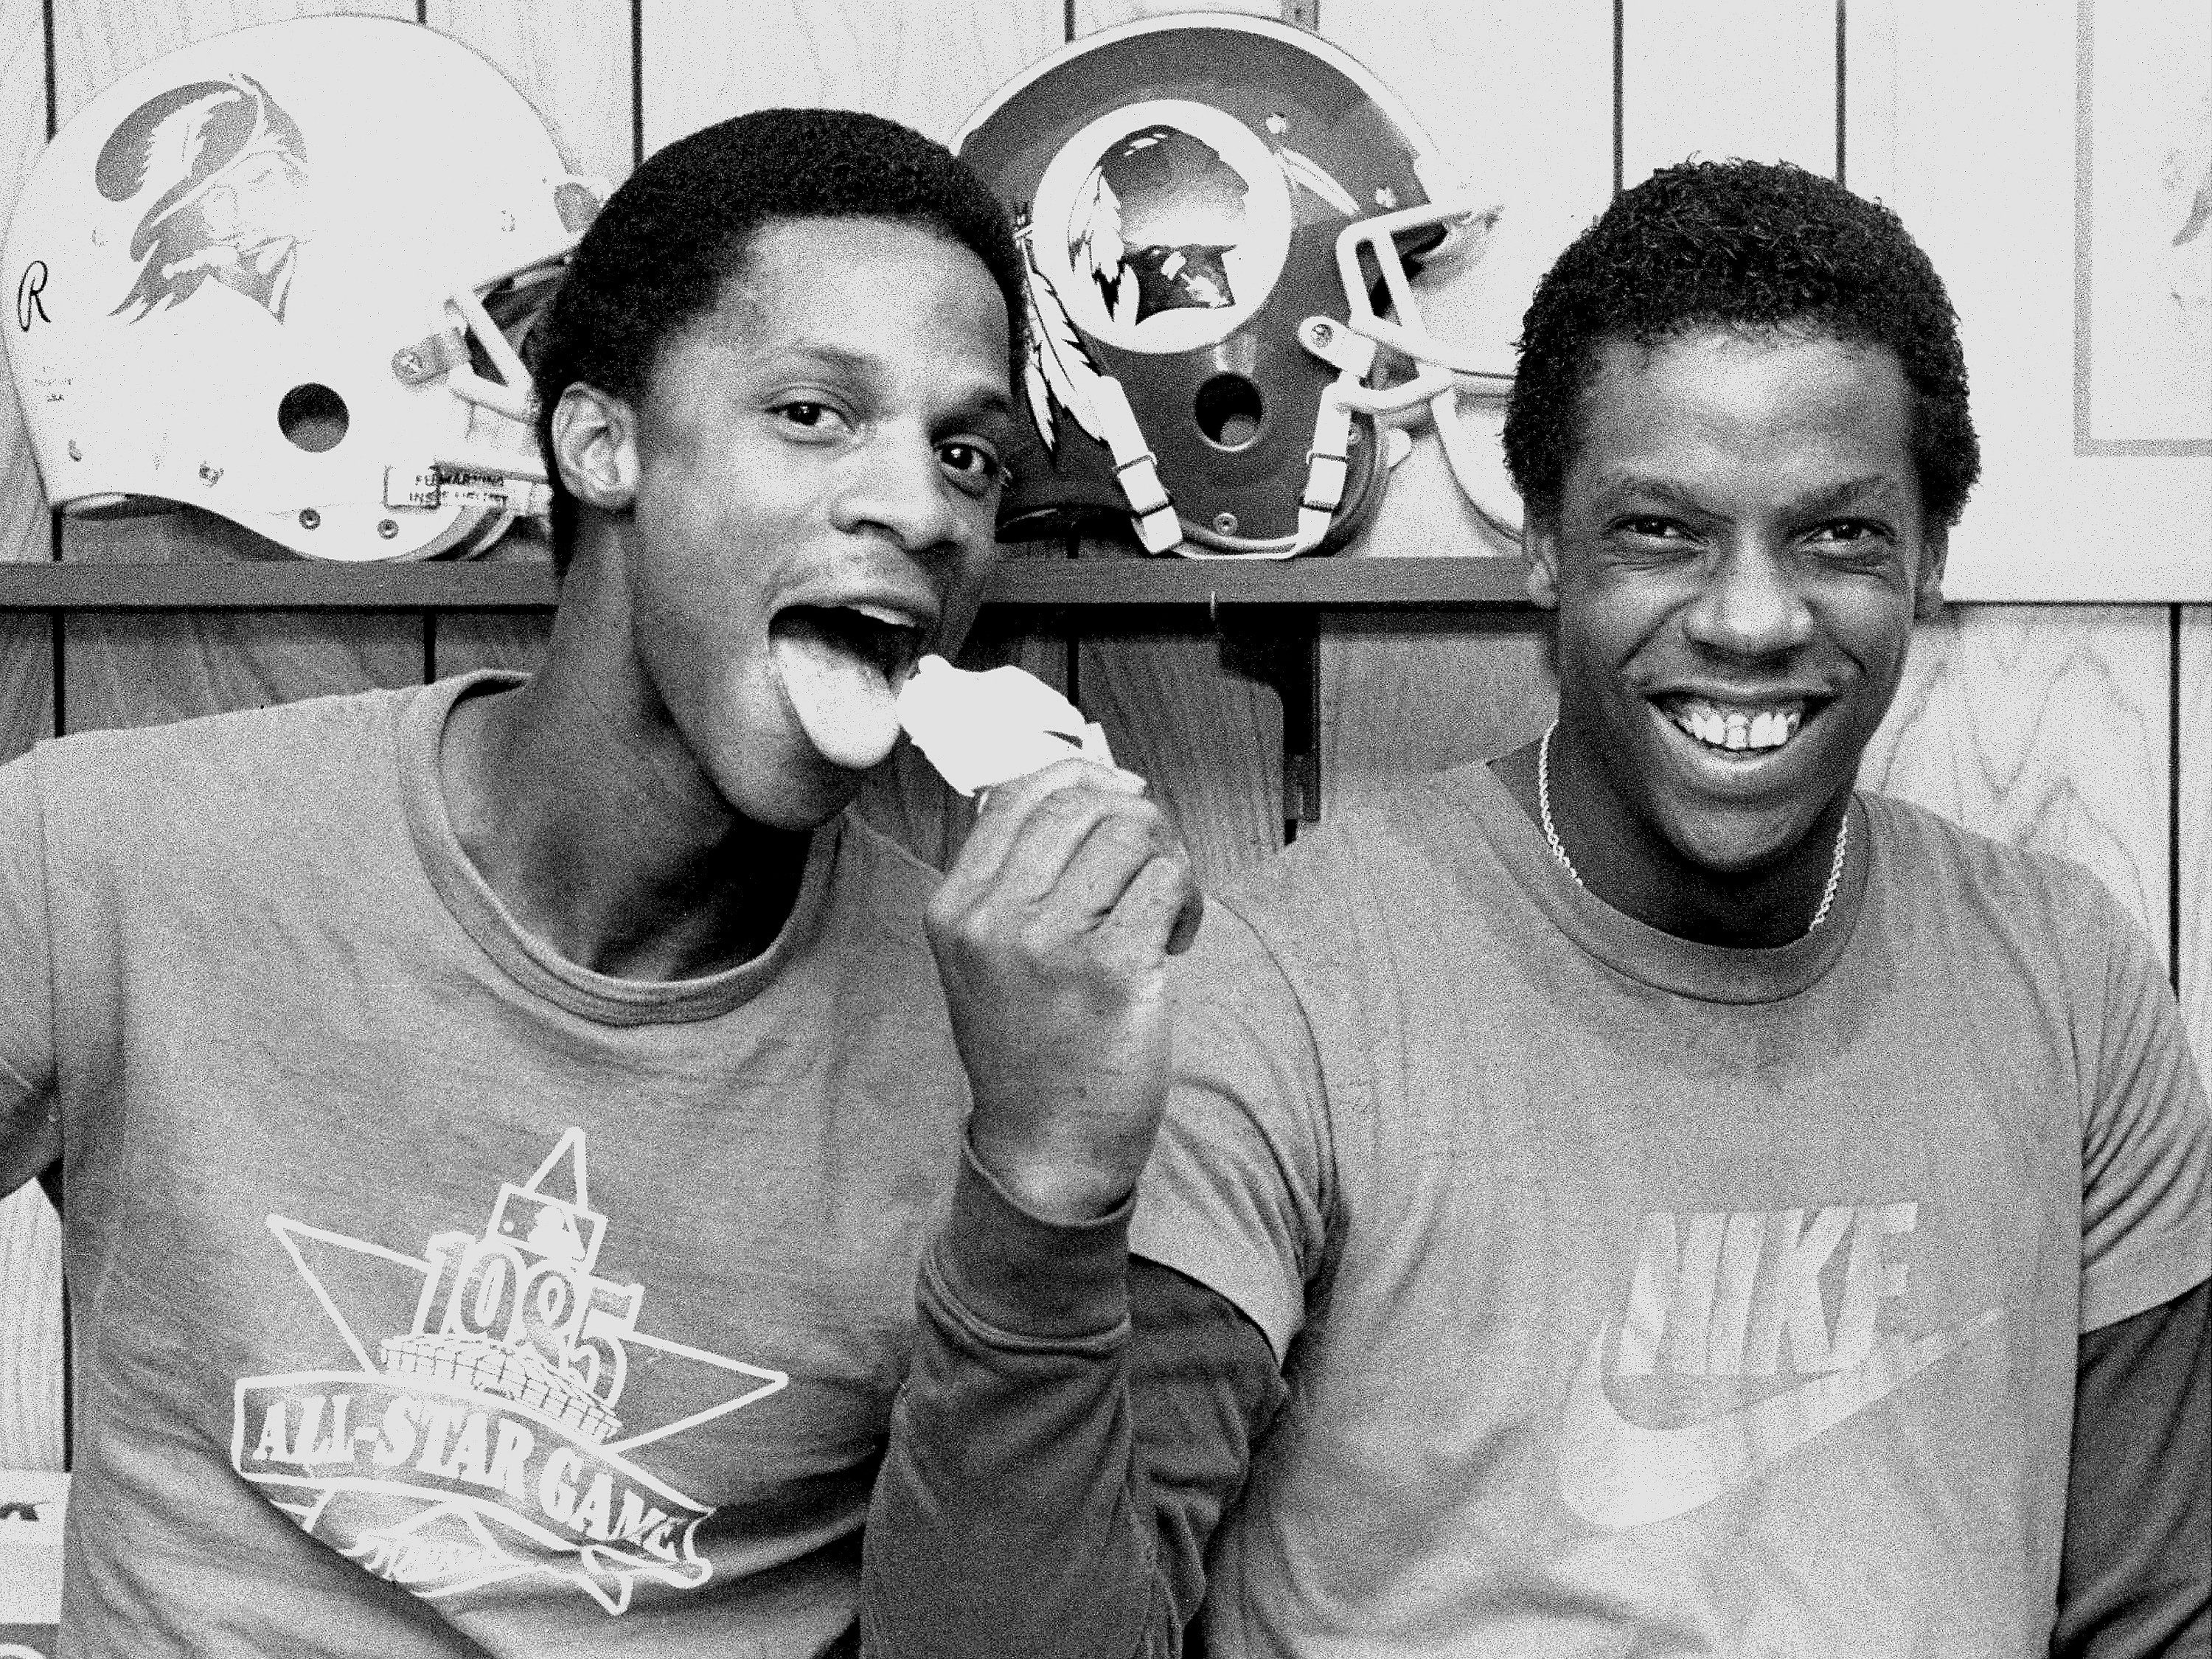 Teamwork: New YOrk Mets' Darryl Strawberry (left) and Dwight